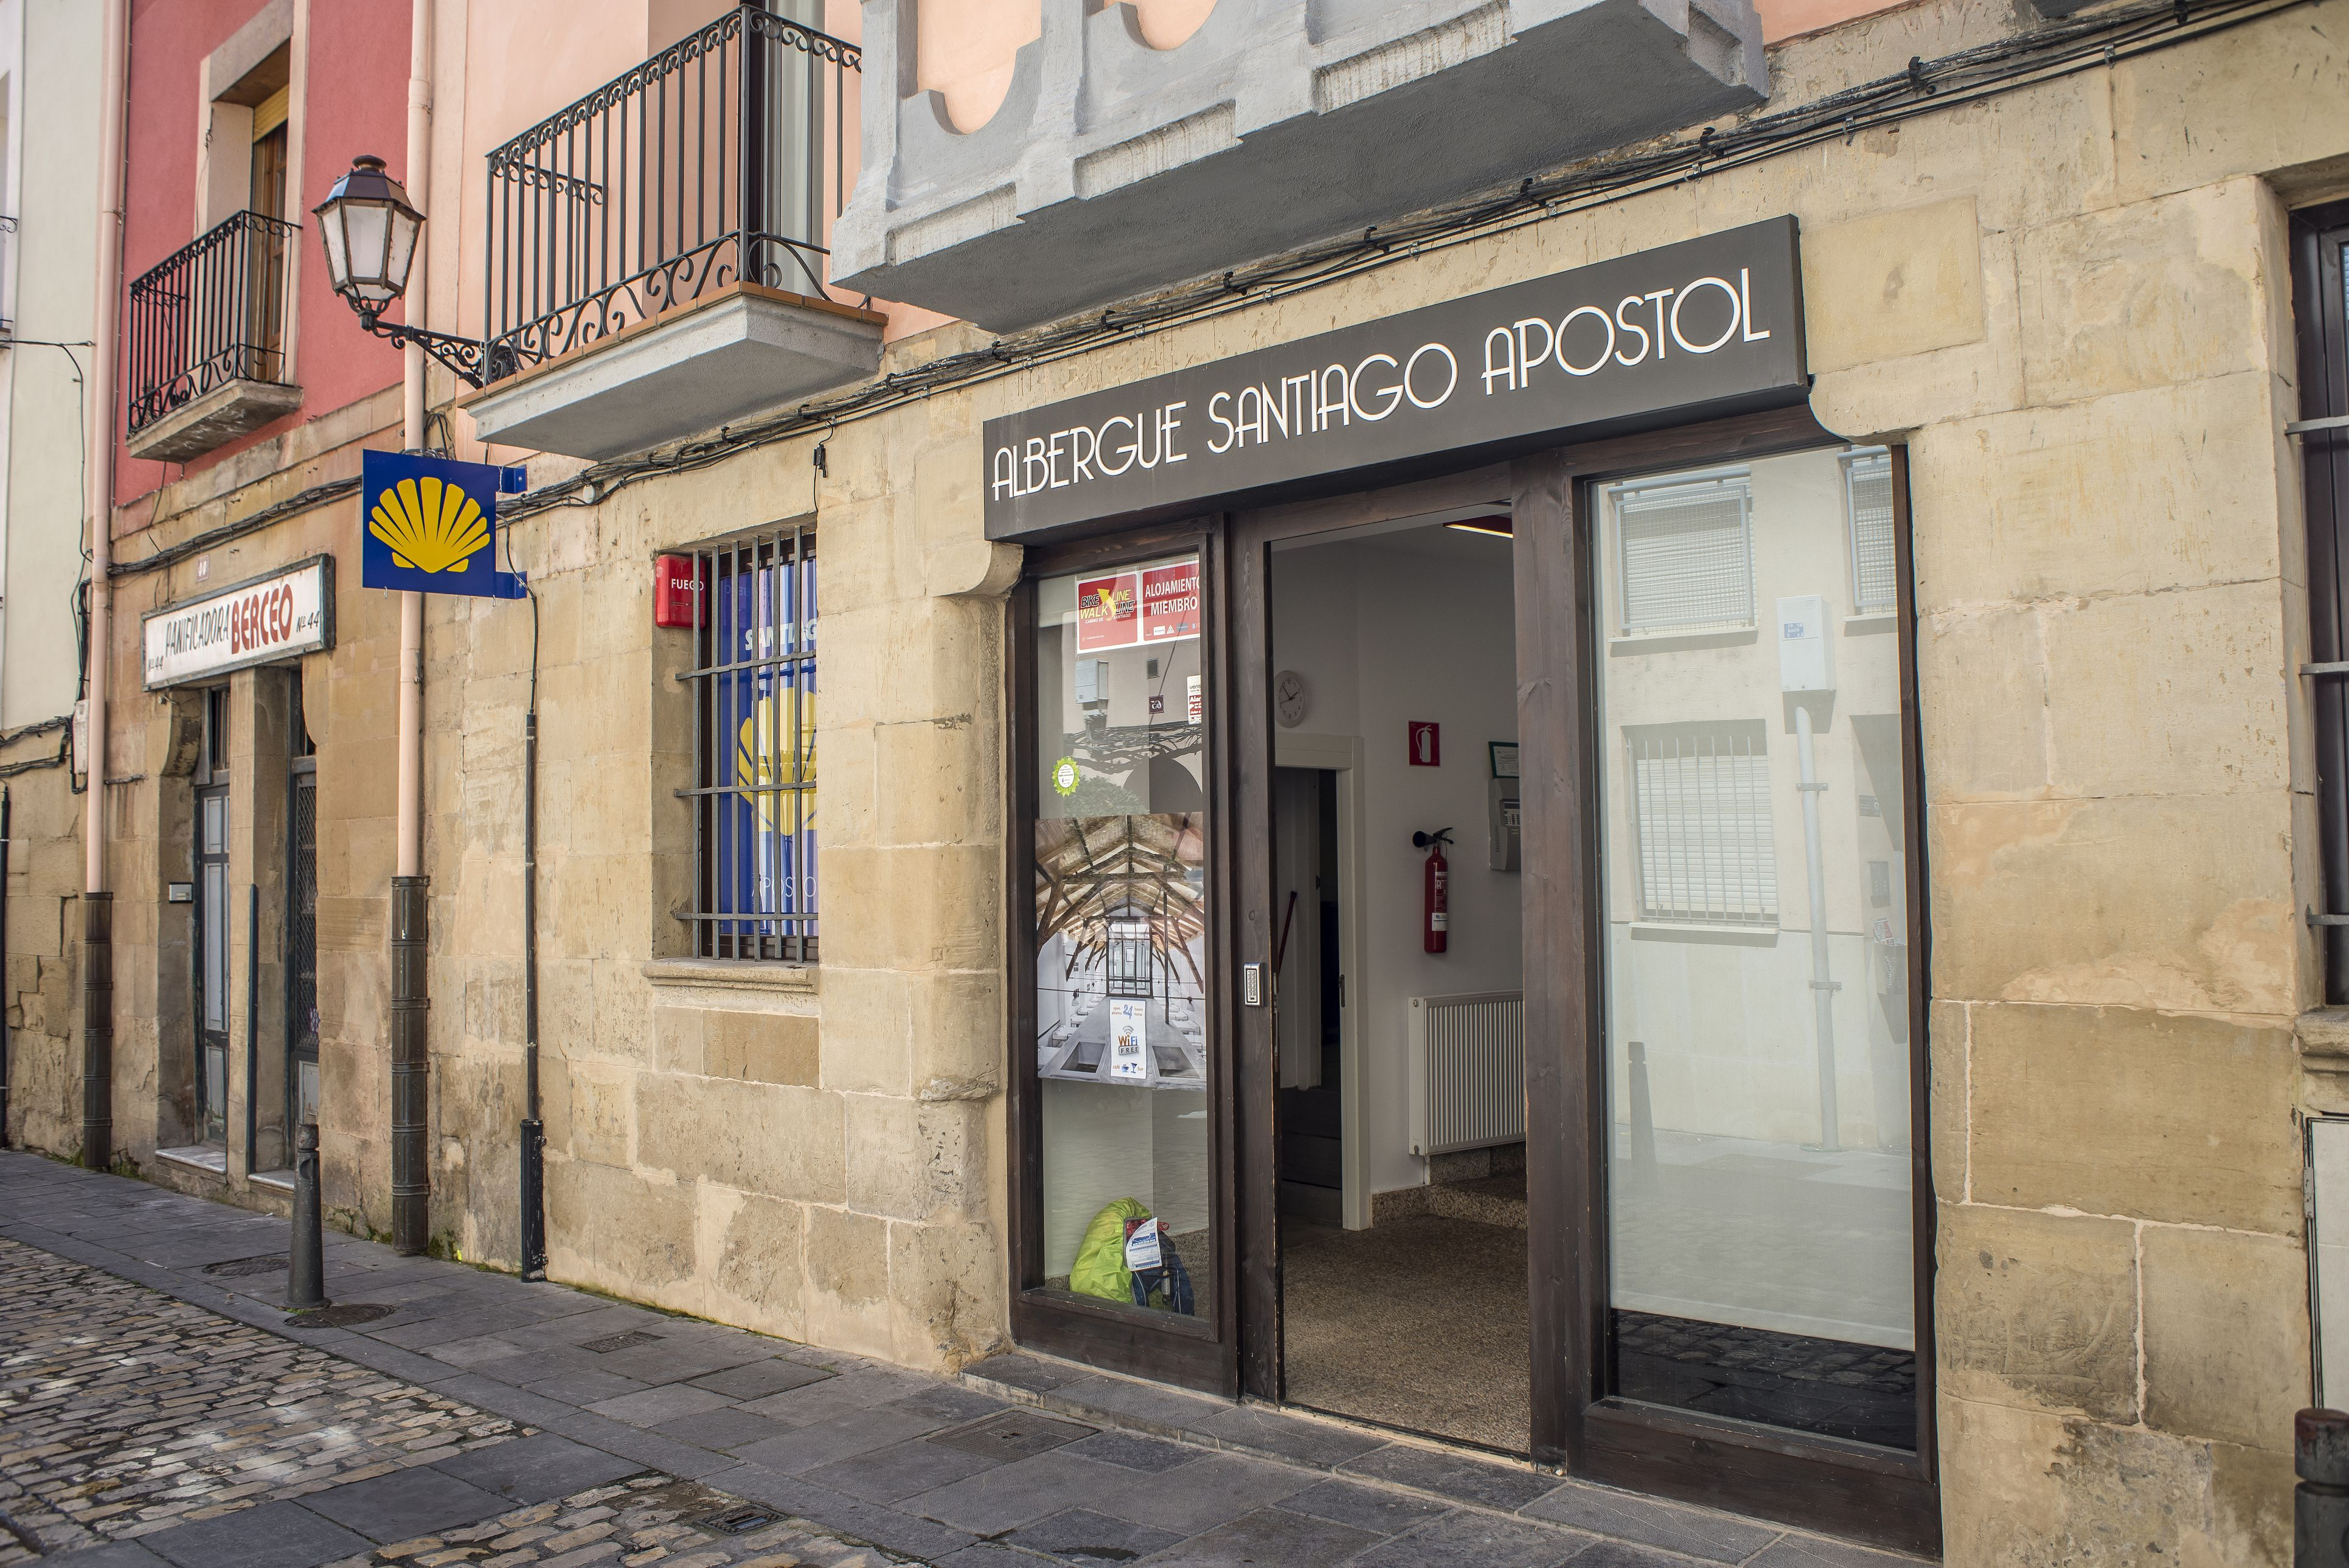 Pilgrims hostels of the Way of St. James in Logroño.